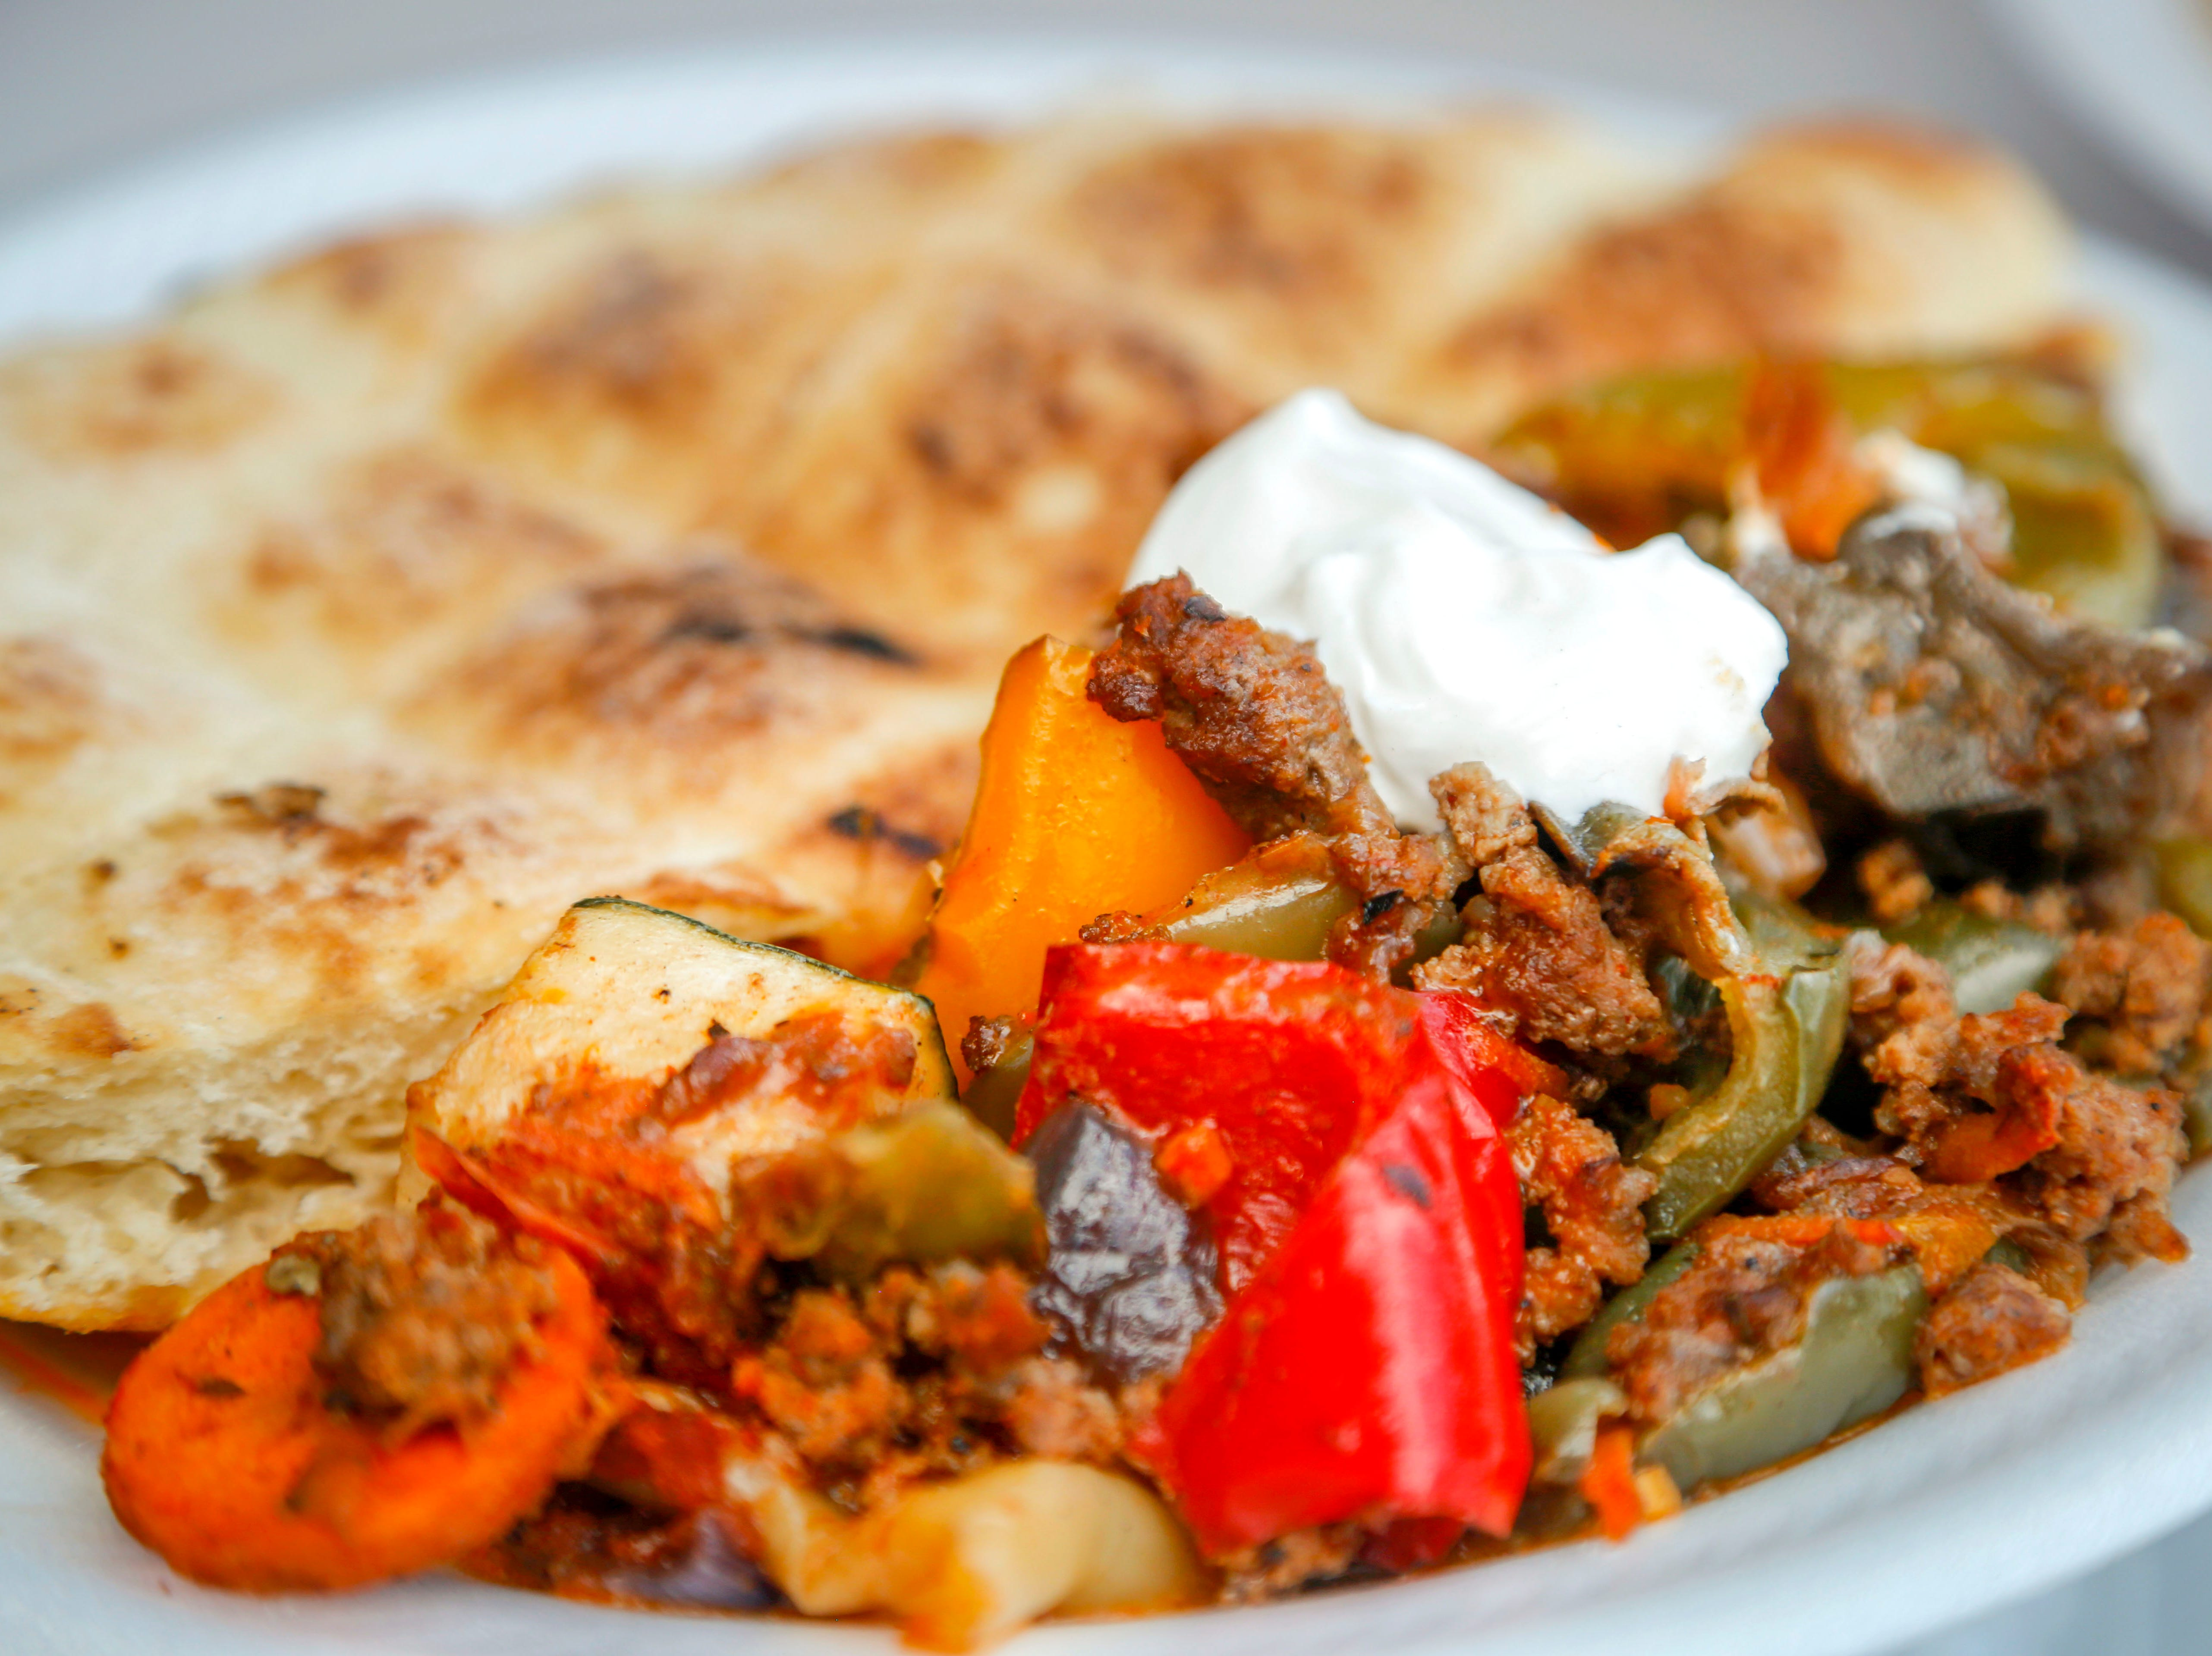 Sataras with pita bread from Papillon Bosnian Food at the World Food and Music Festival in Des Moines Sept. 14, 2018.